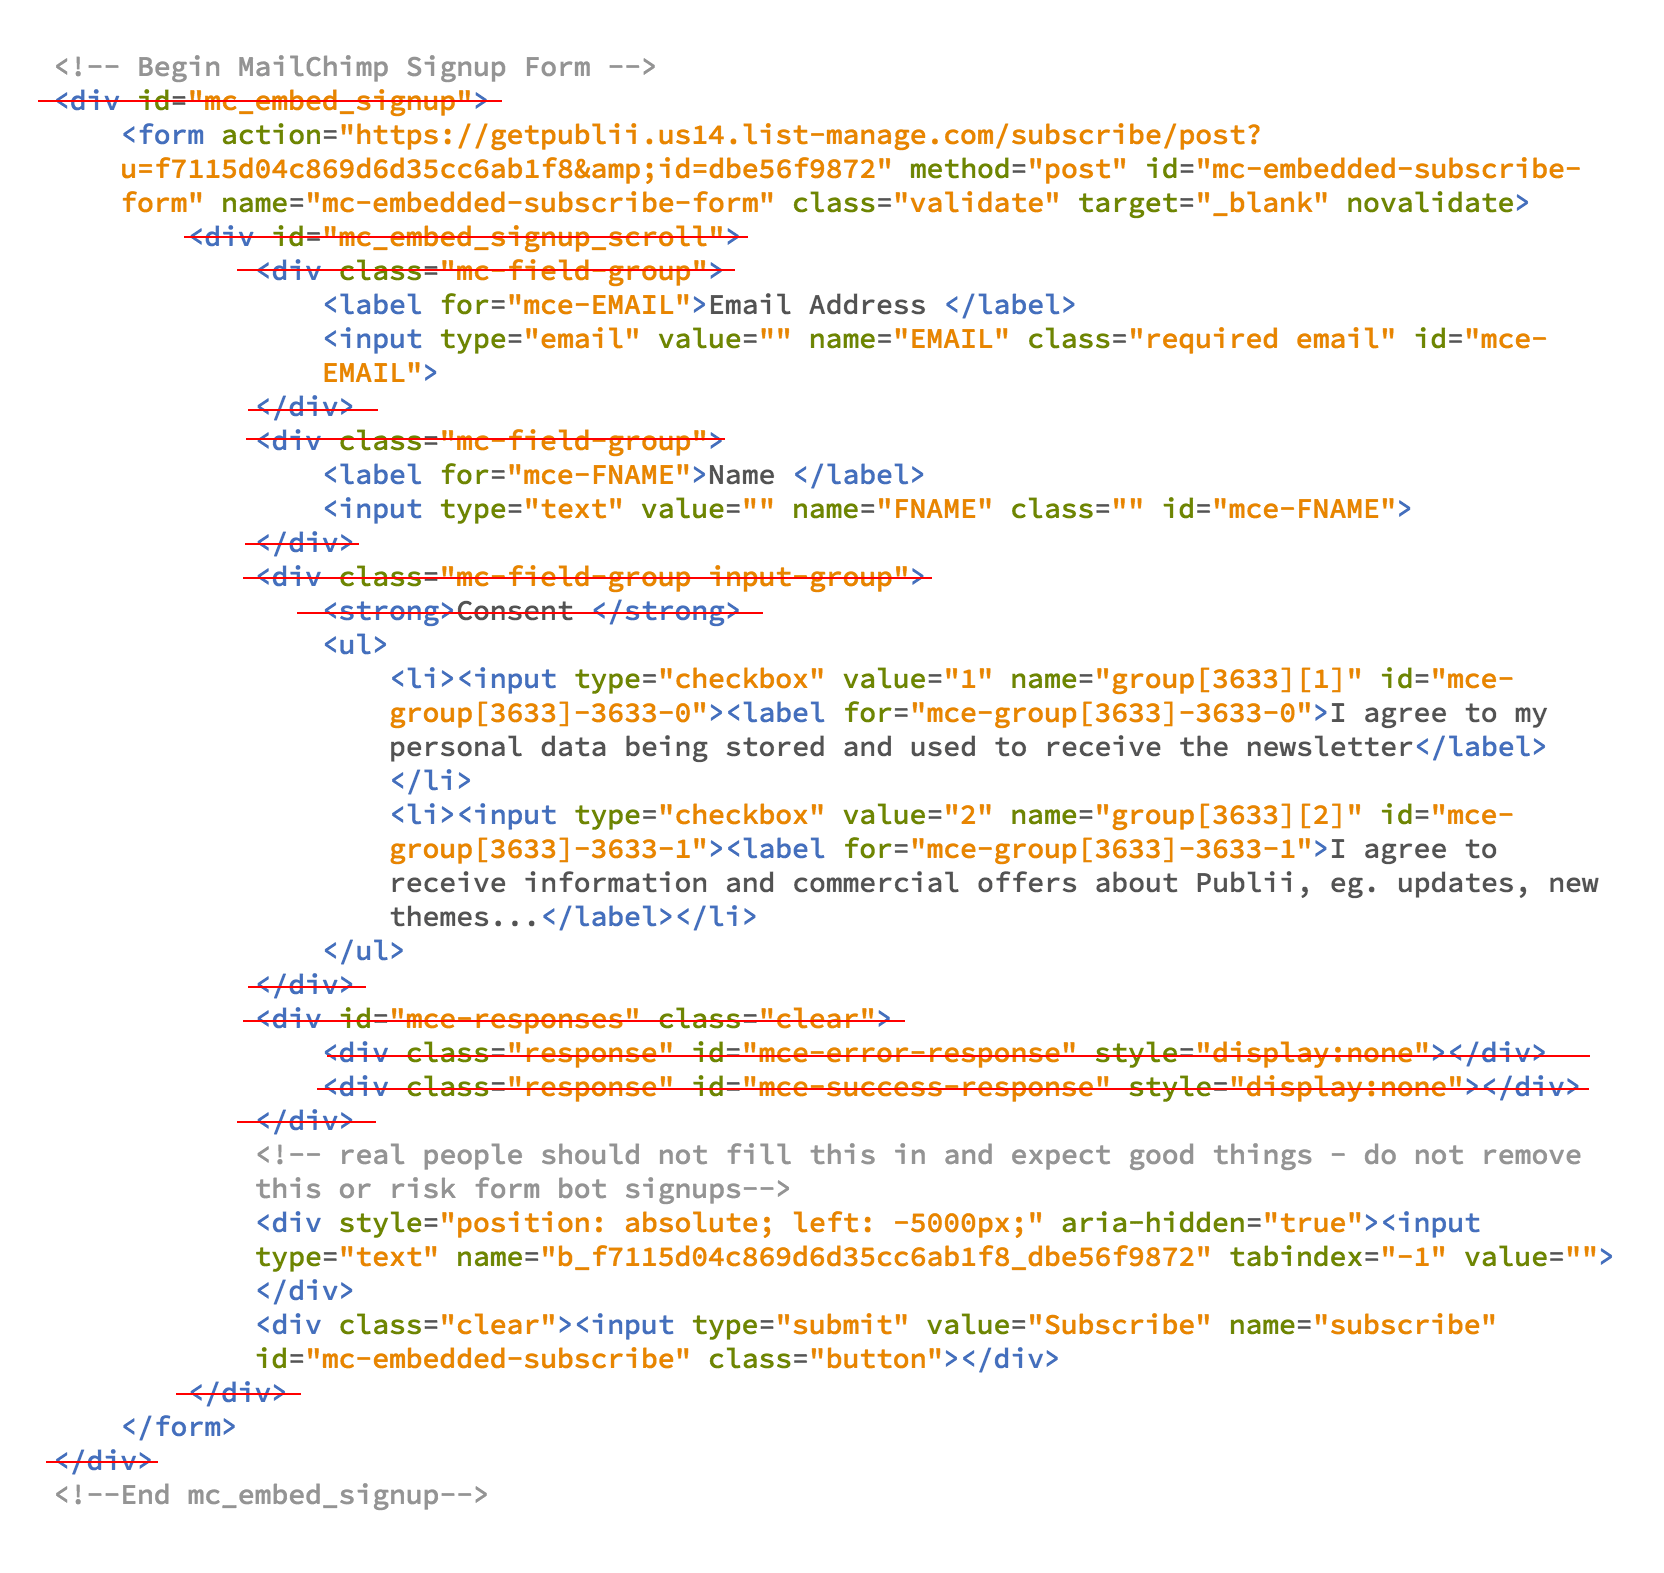 Removing unnecessary HTML elements from newsletter form